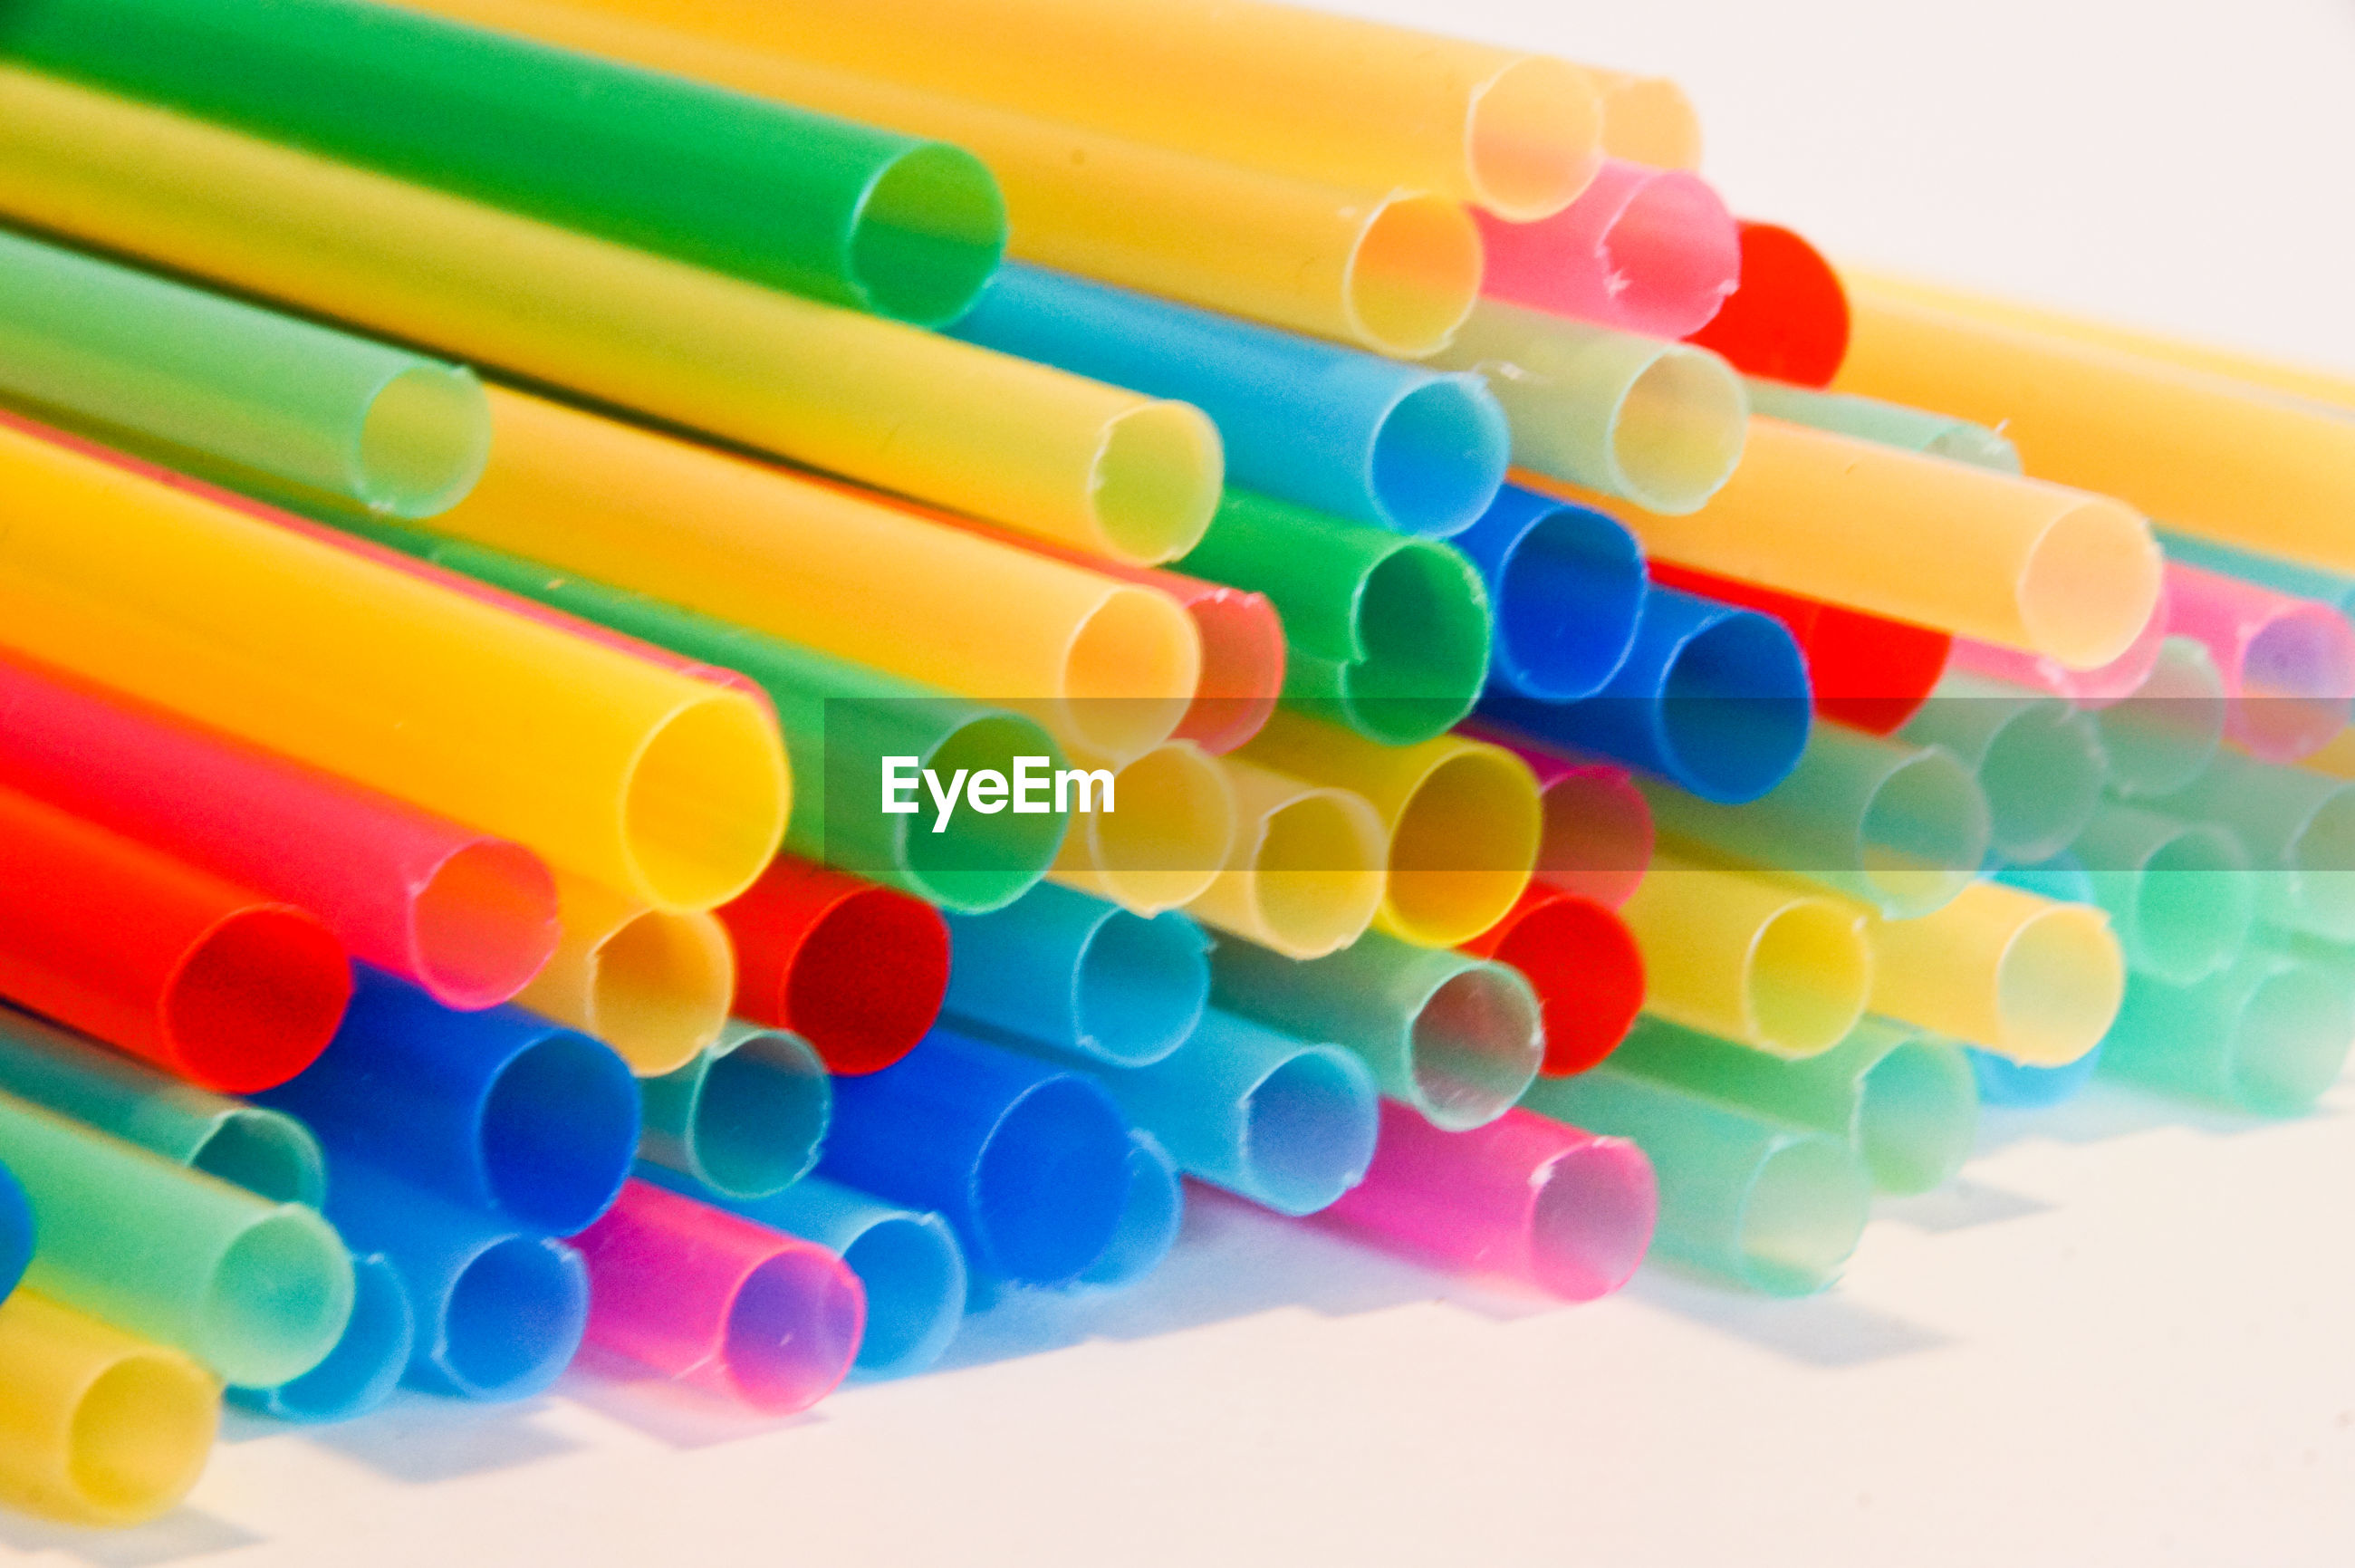 Close-up of colorful drinking straws on table